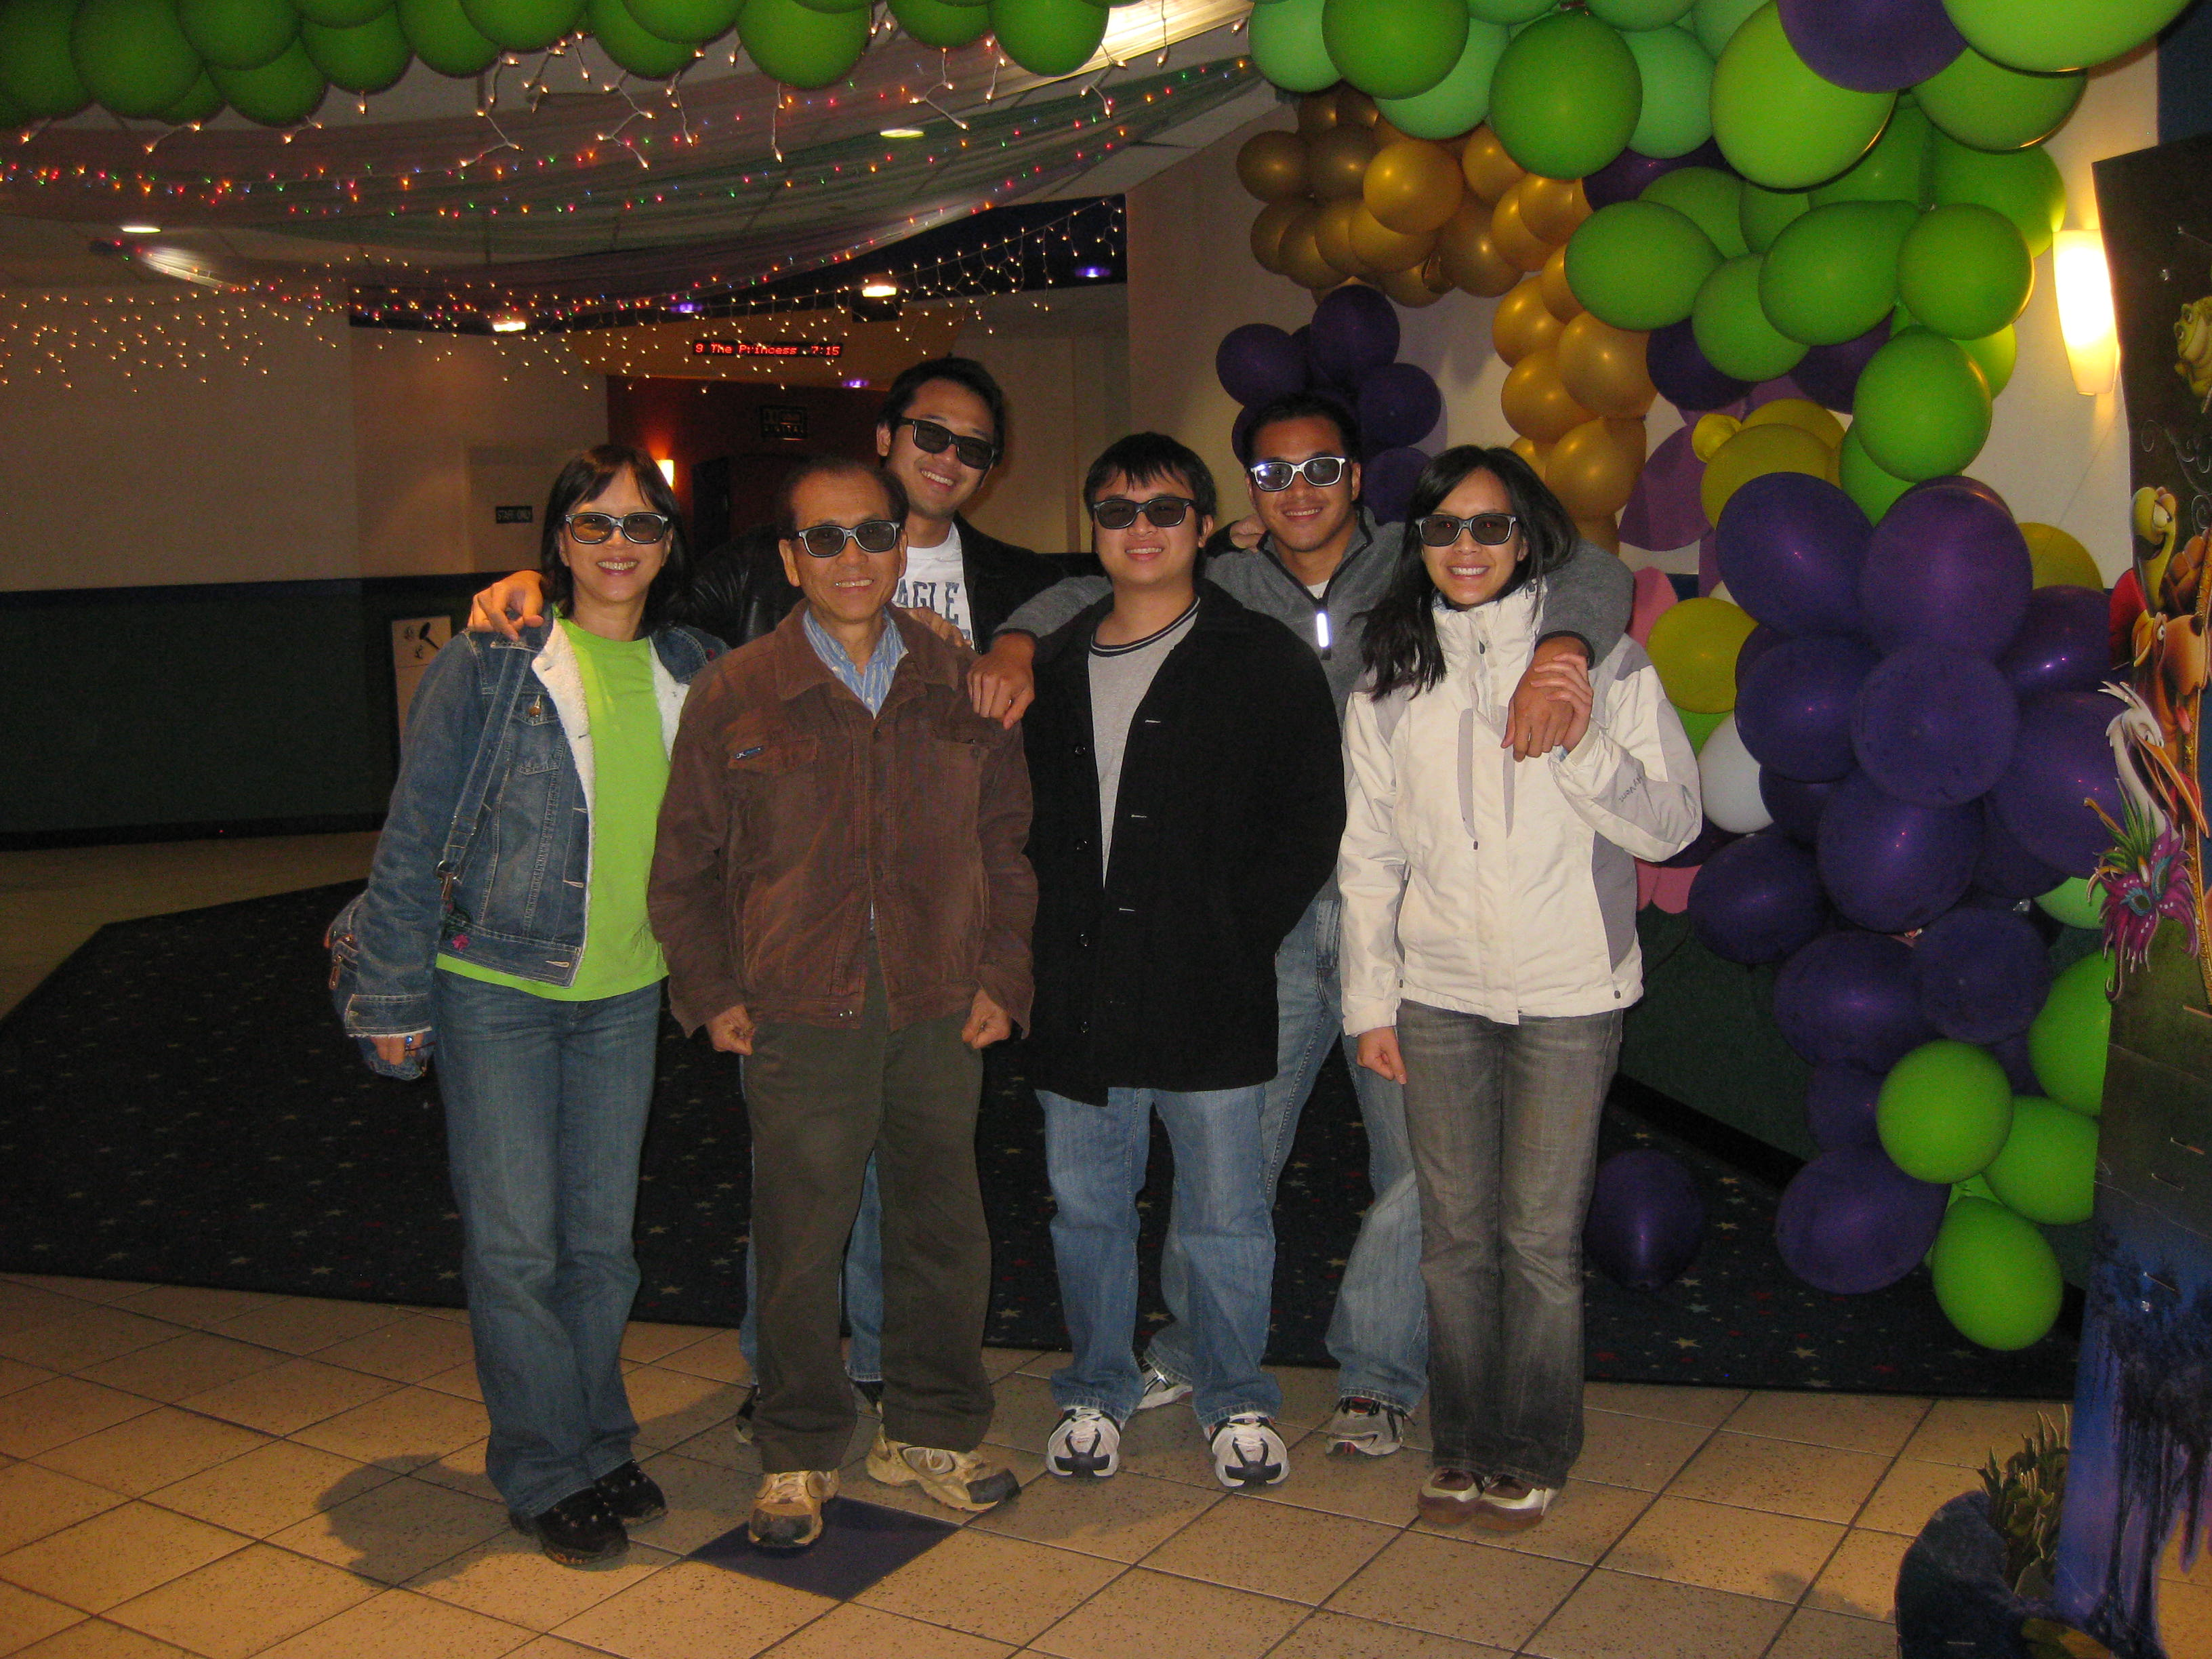 My family and I going to see Avatar in 3-D!! Very good movie by the way!